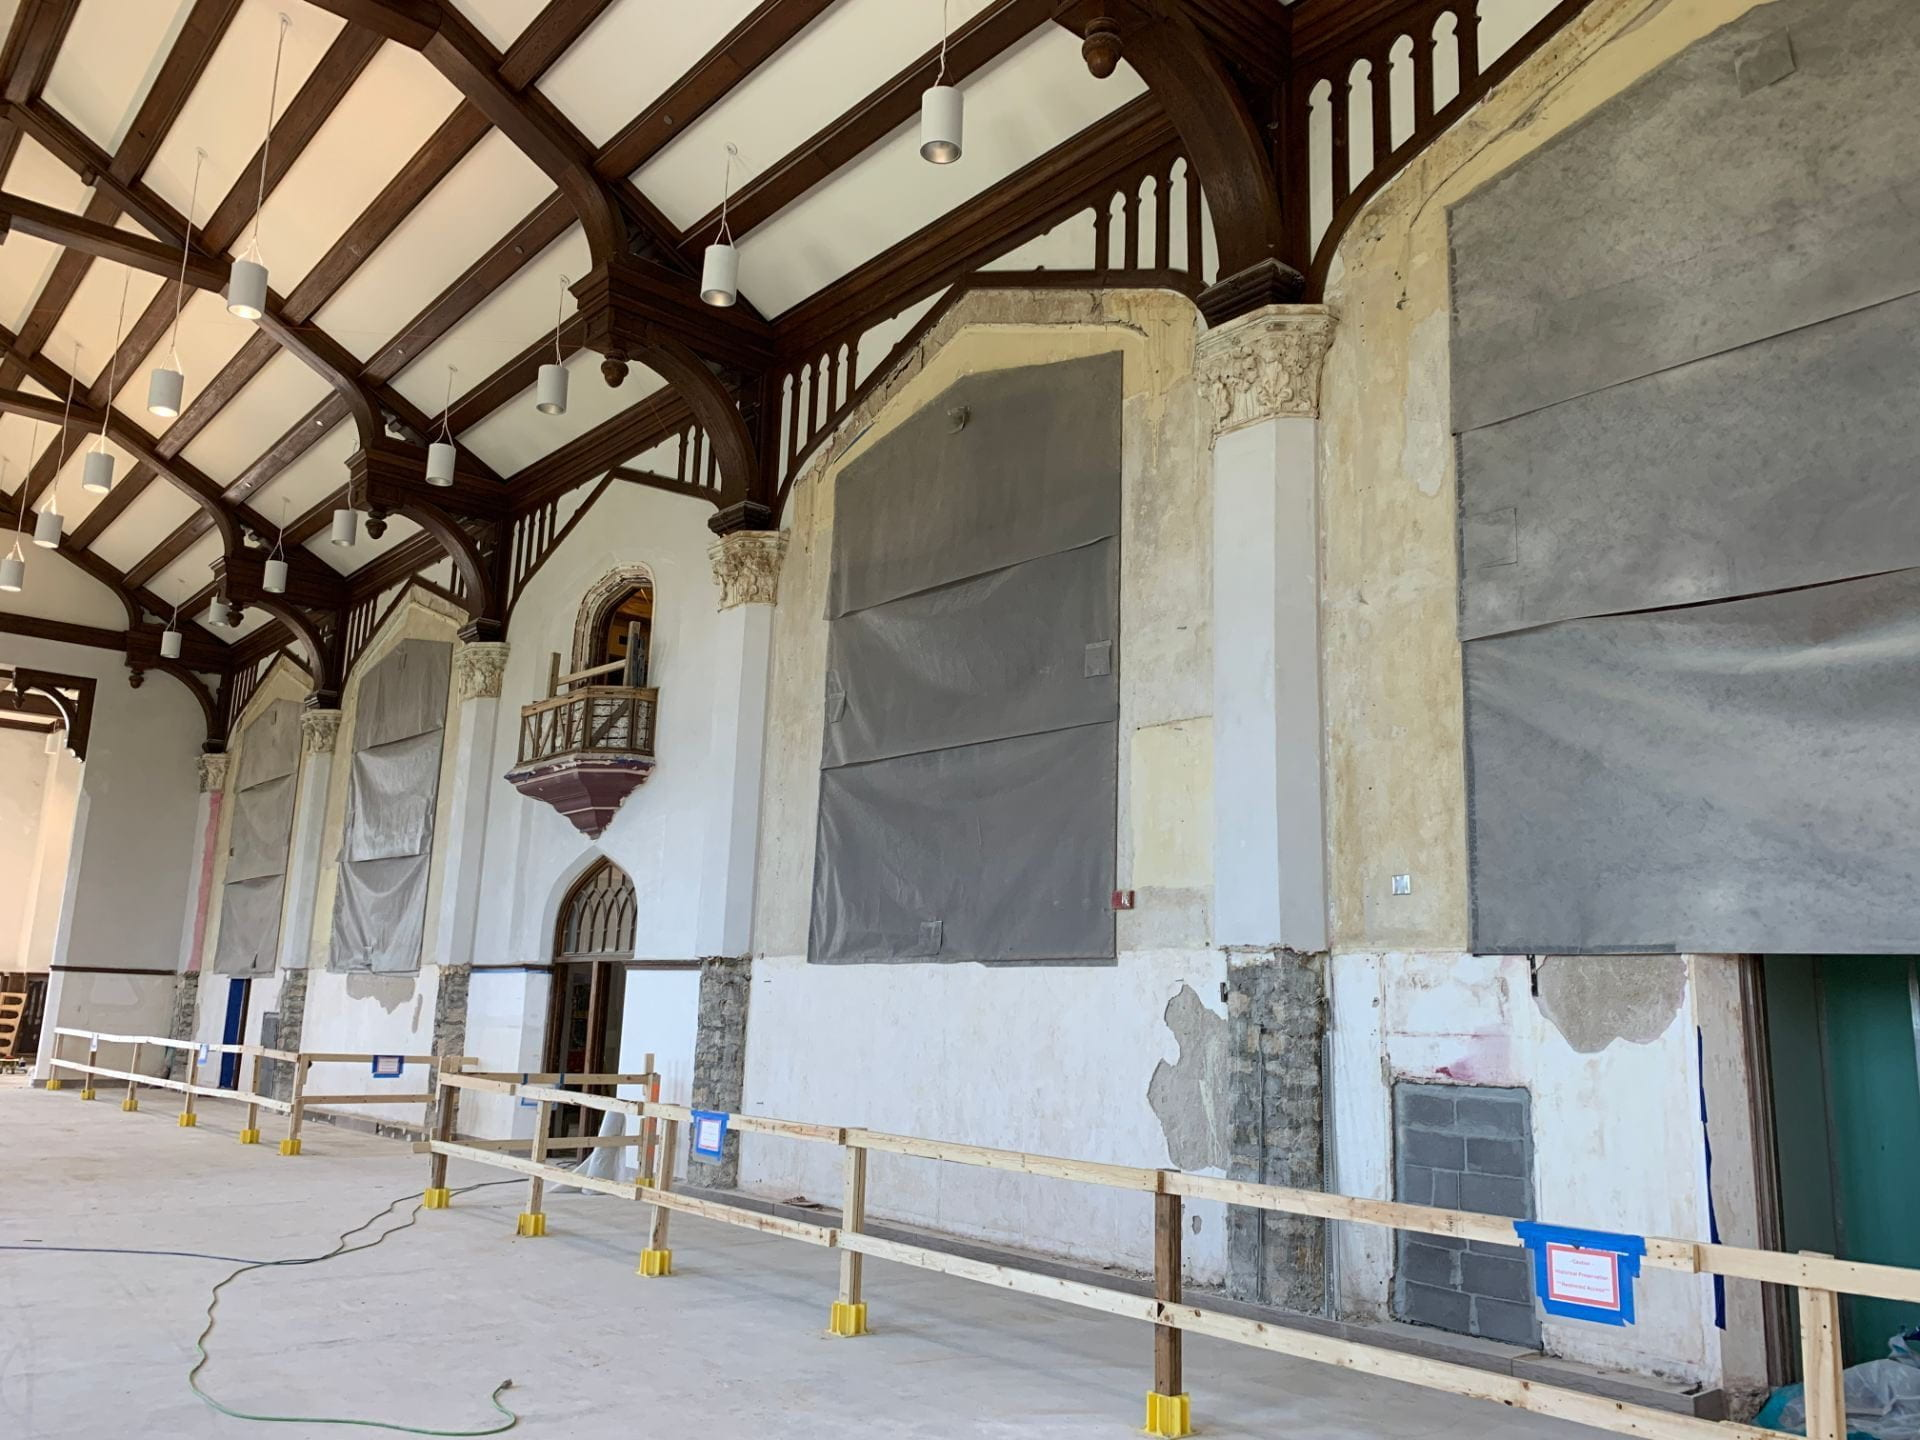 A picture of the covered murals.